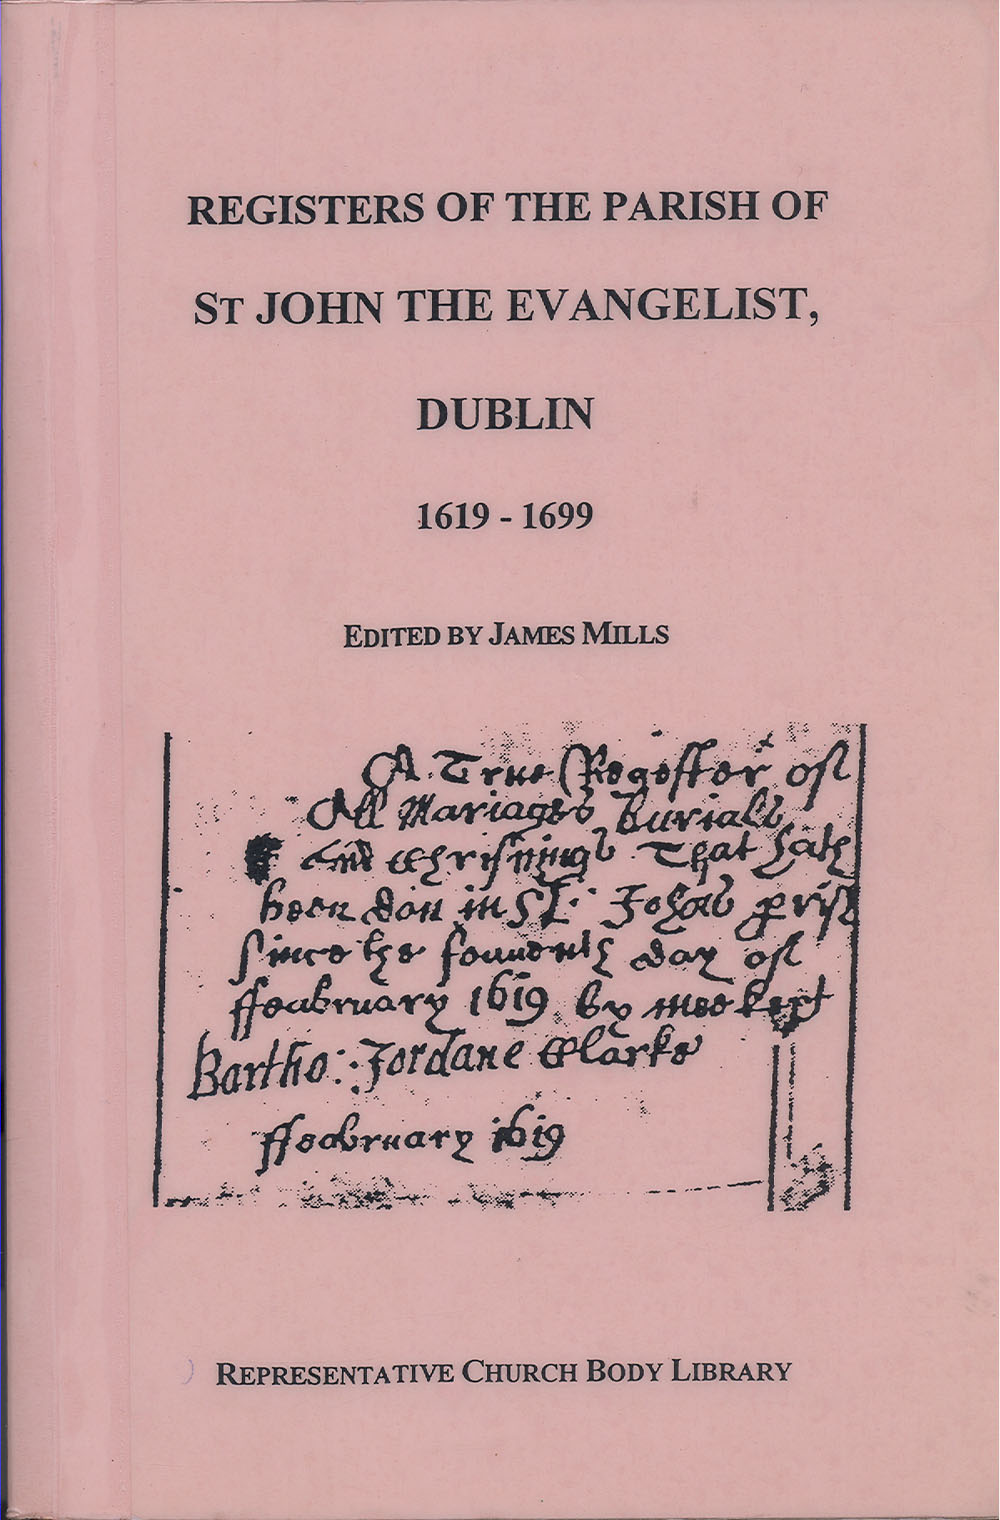 Register of St John the Evangelist parish 1619-1699